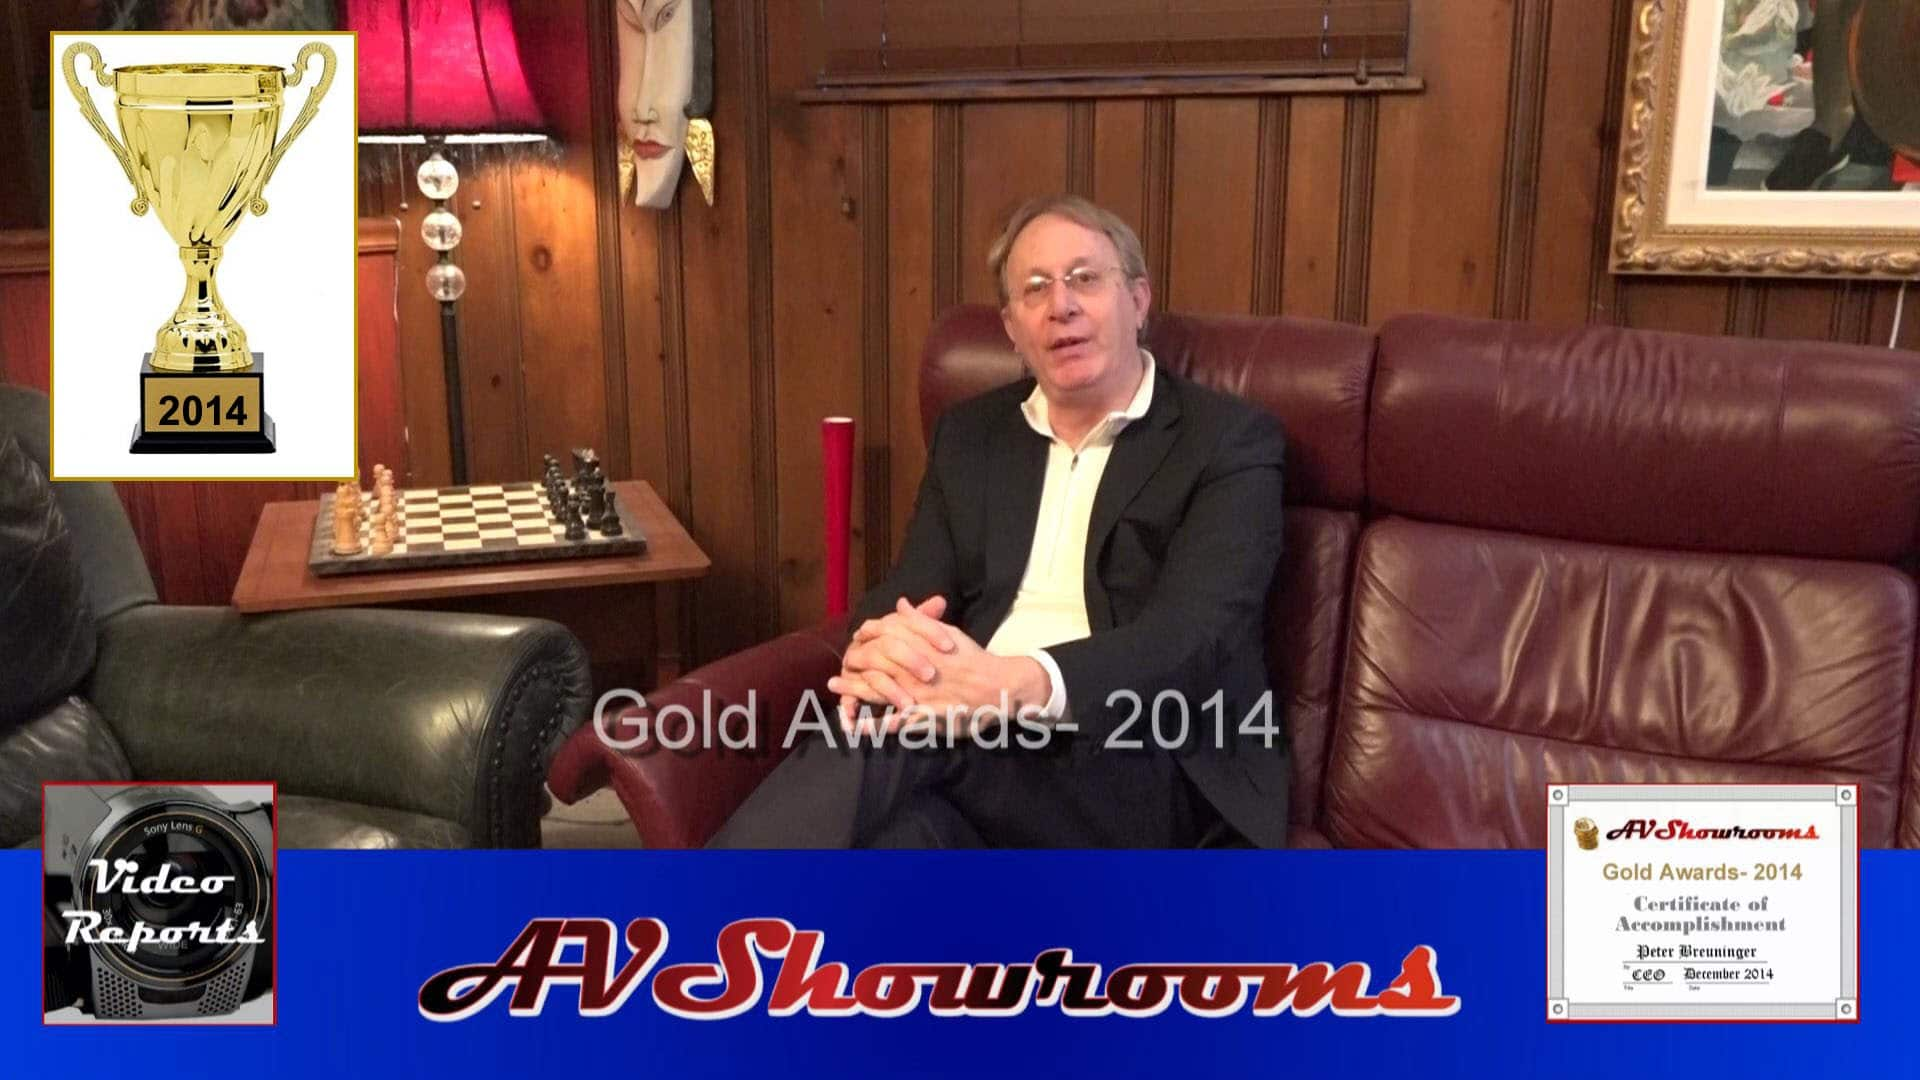 Best of 2014, AVShowrooms Gold Awards, Audiophile of the Year – YouTube